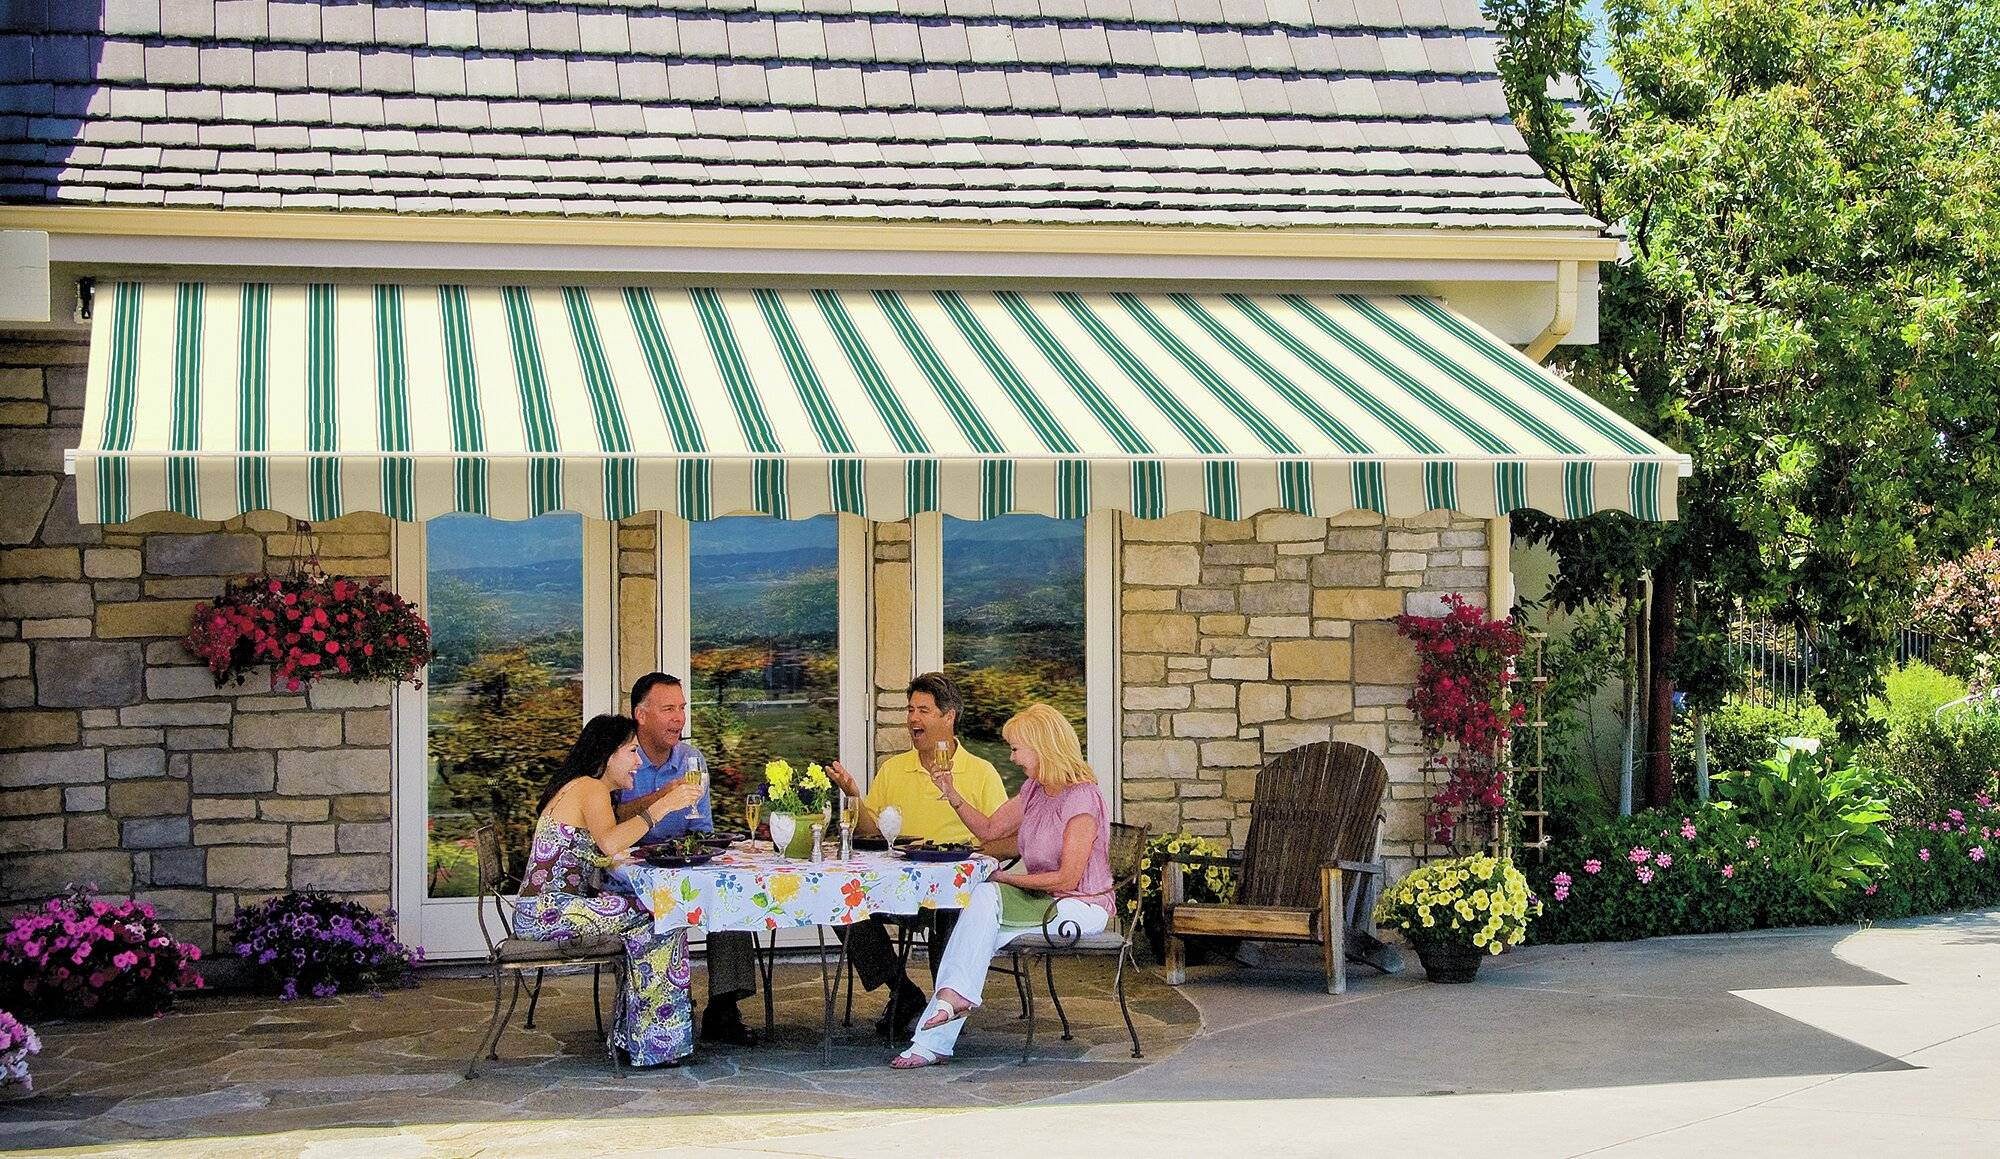 Four people enjoying a meal under a shade